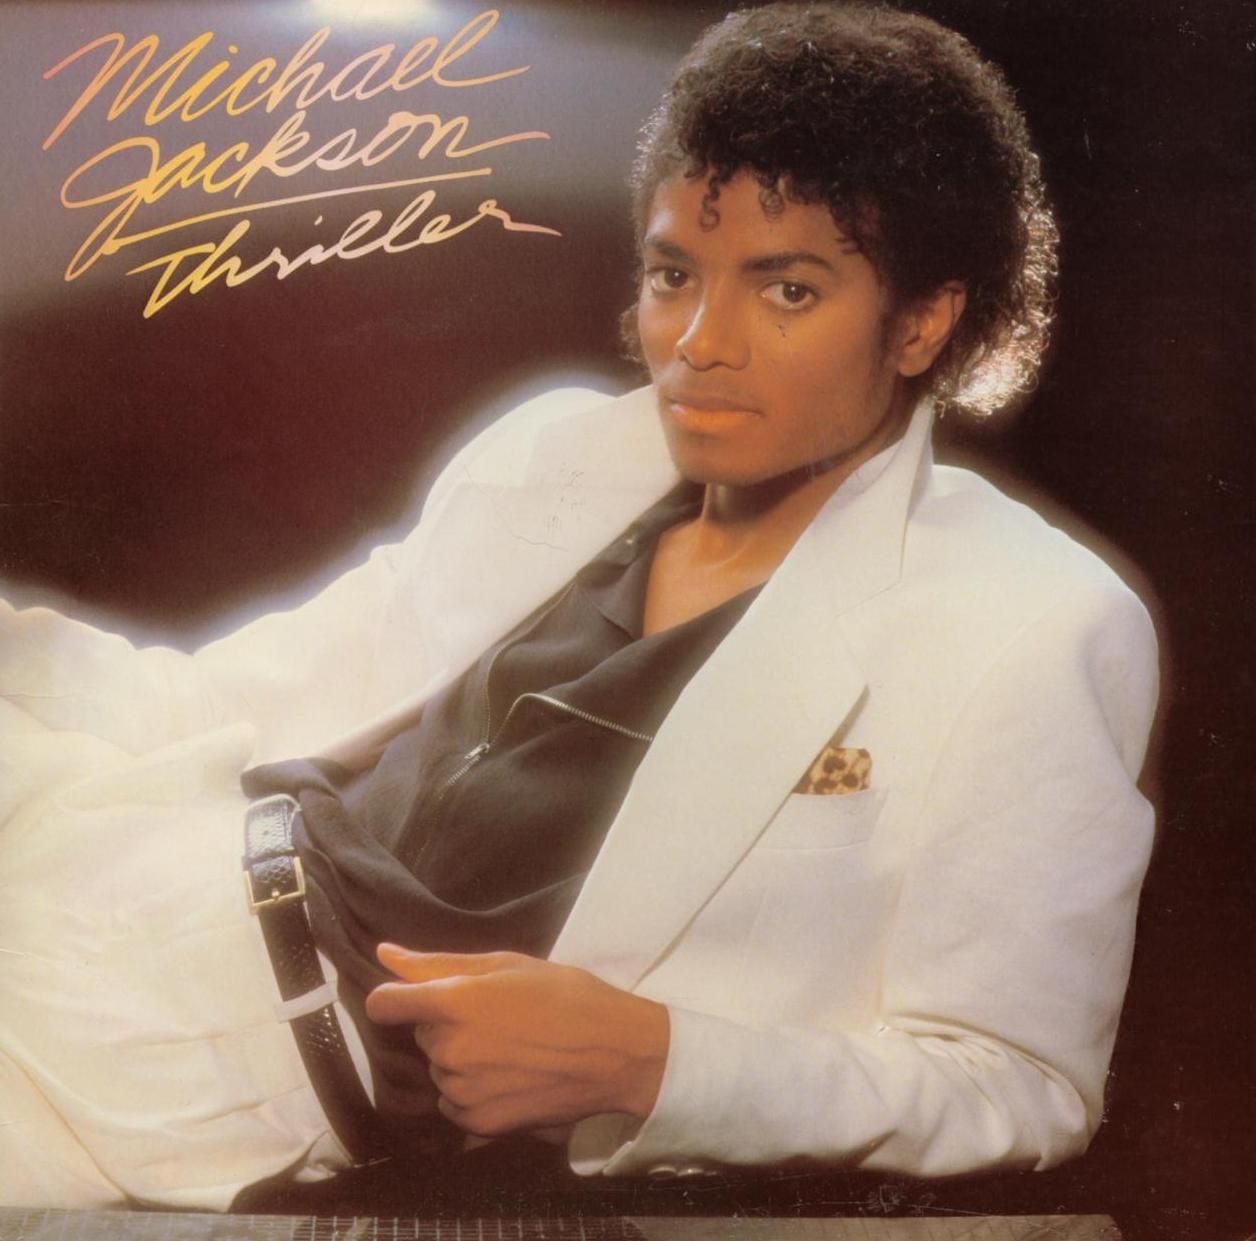 Michael Jackson - Thriller 25 album cover